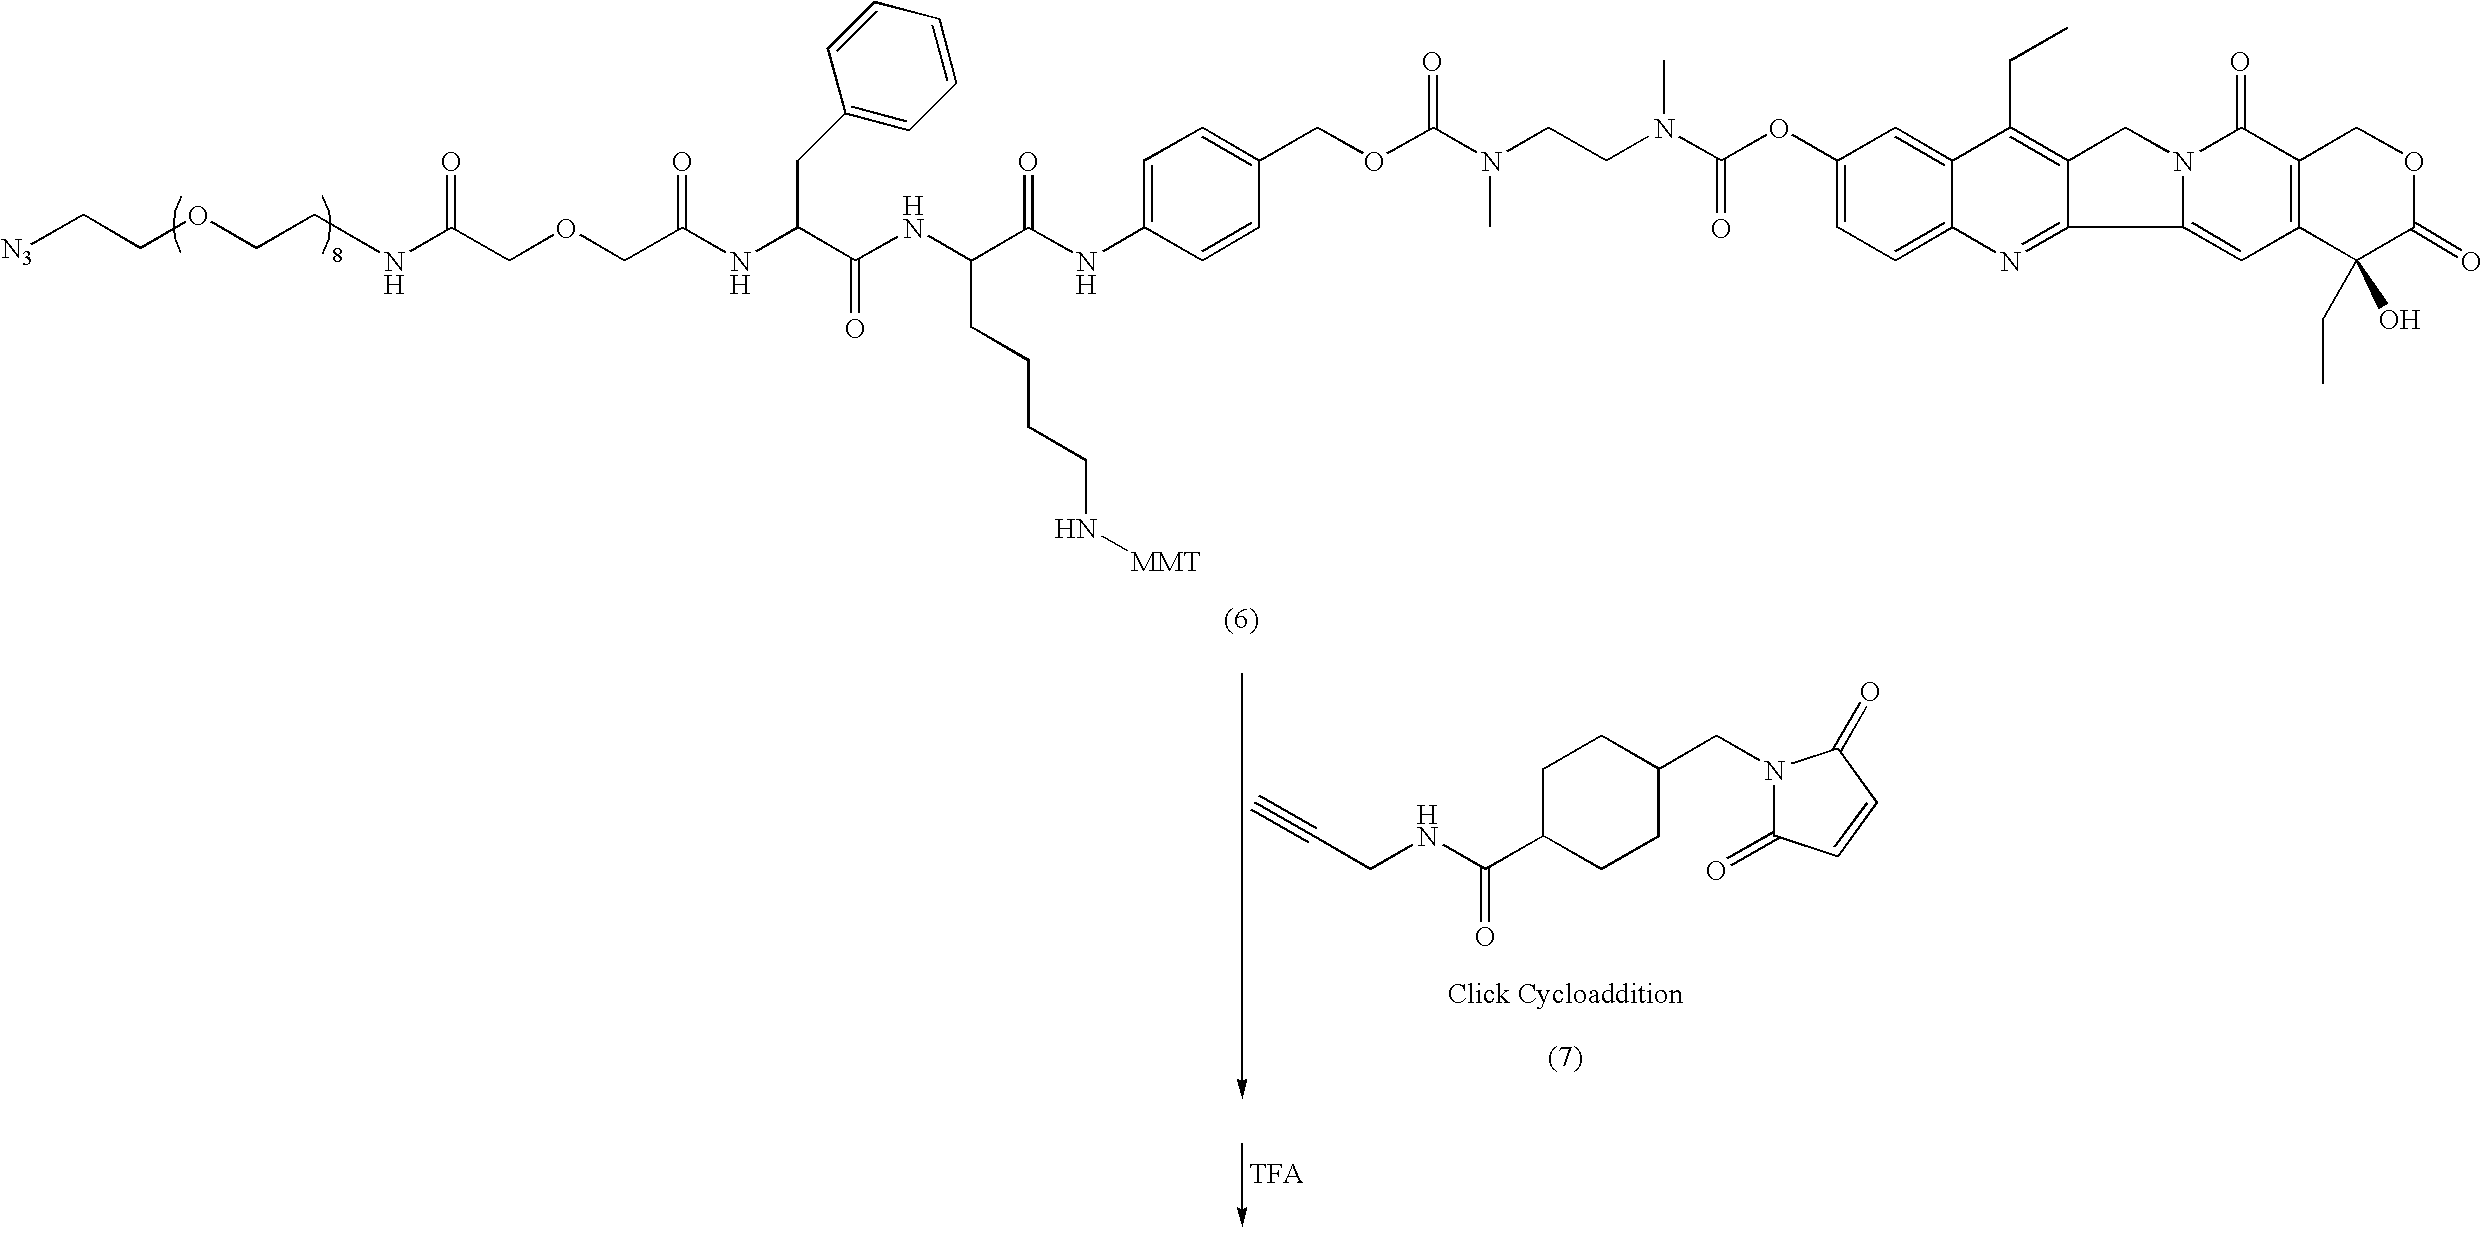 Us20100104589a1 Immunoconjugates With An Intracellularly Cleavable Figure 4 Hamuro Envelope Detector Circuit Schematic Diagram 20100429 C00017